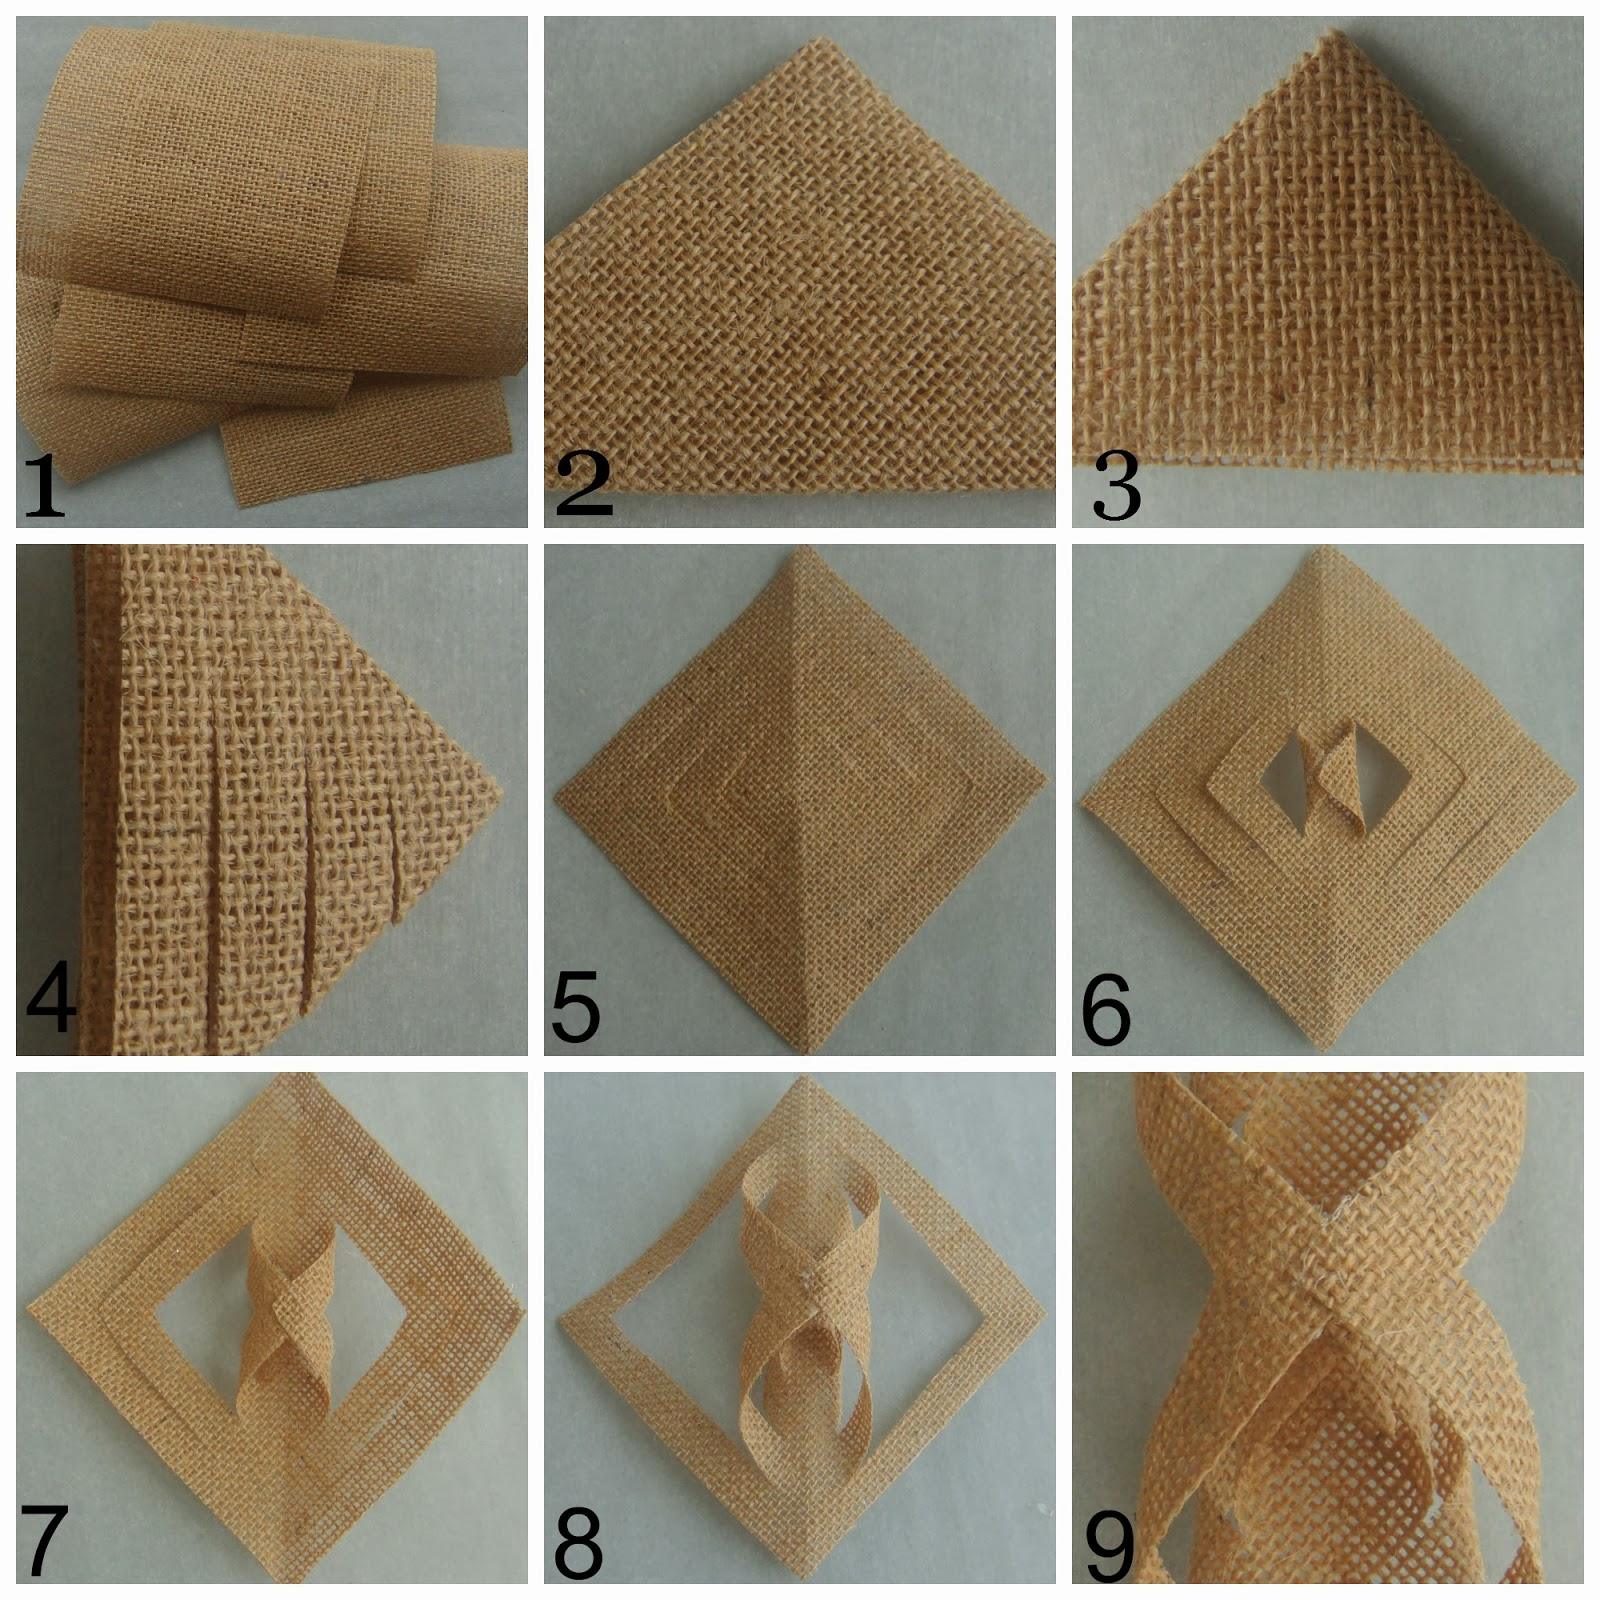 Crafting diy projects decorating for Burlap crafts